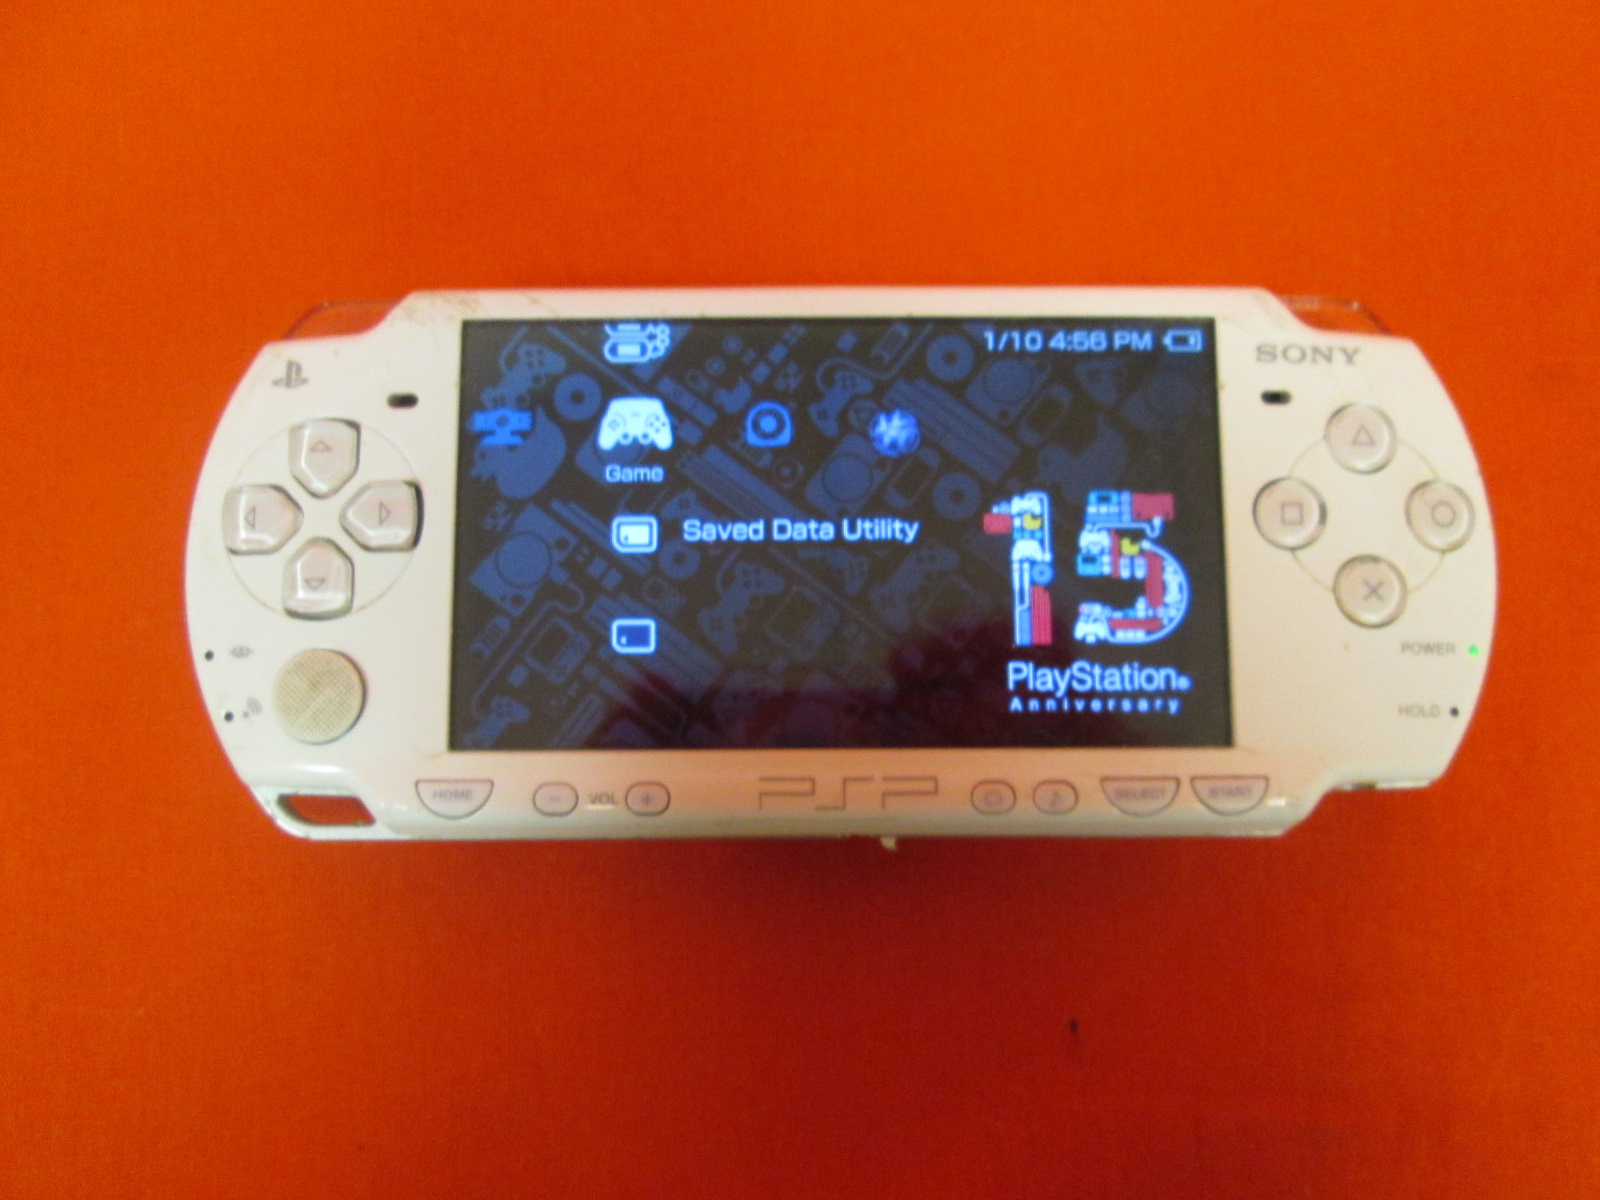 Image 0 of Sony PlayStation PSP 2001 Portable Handheld Game Console White